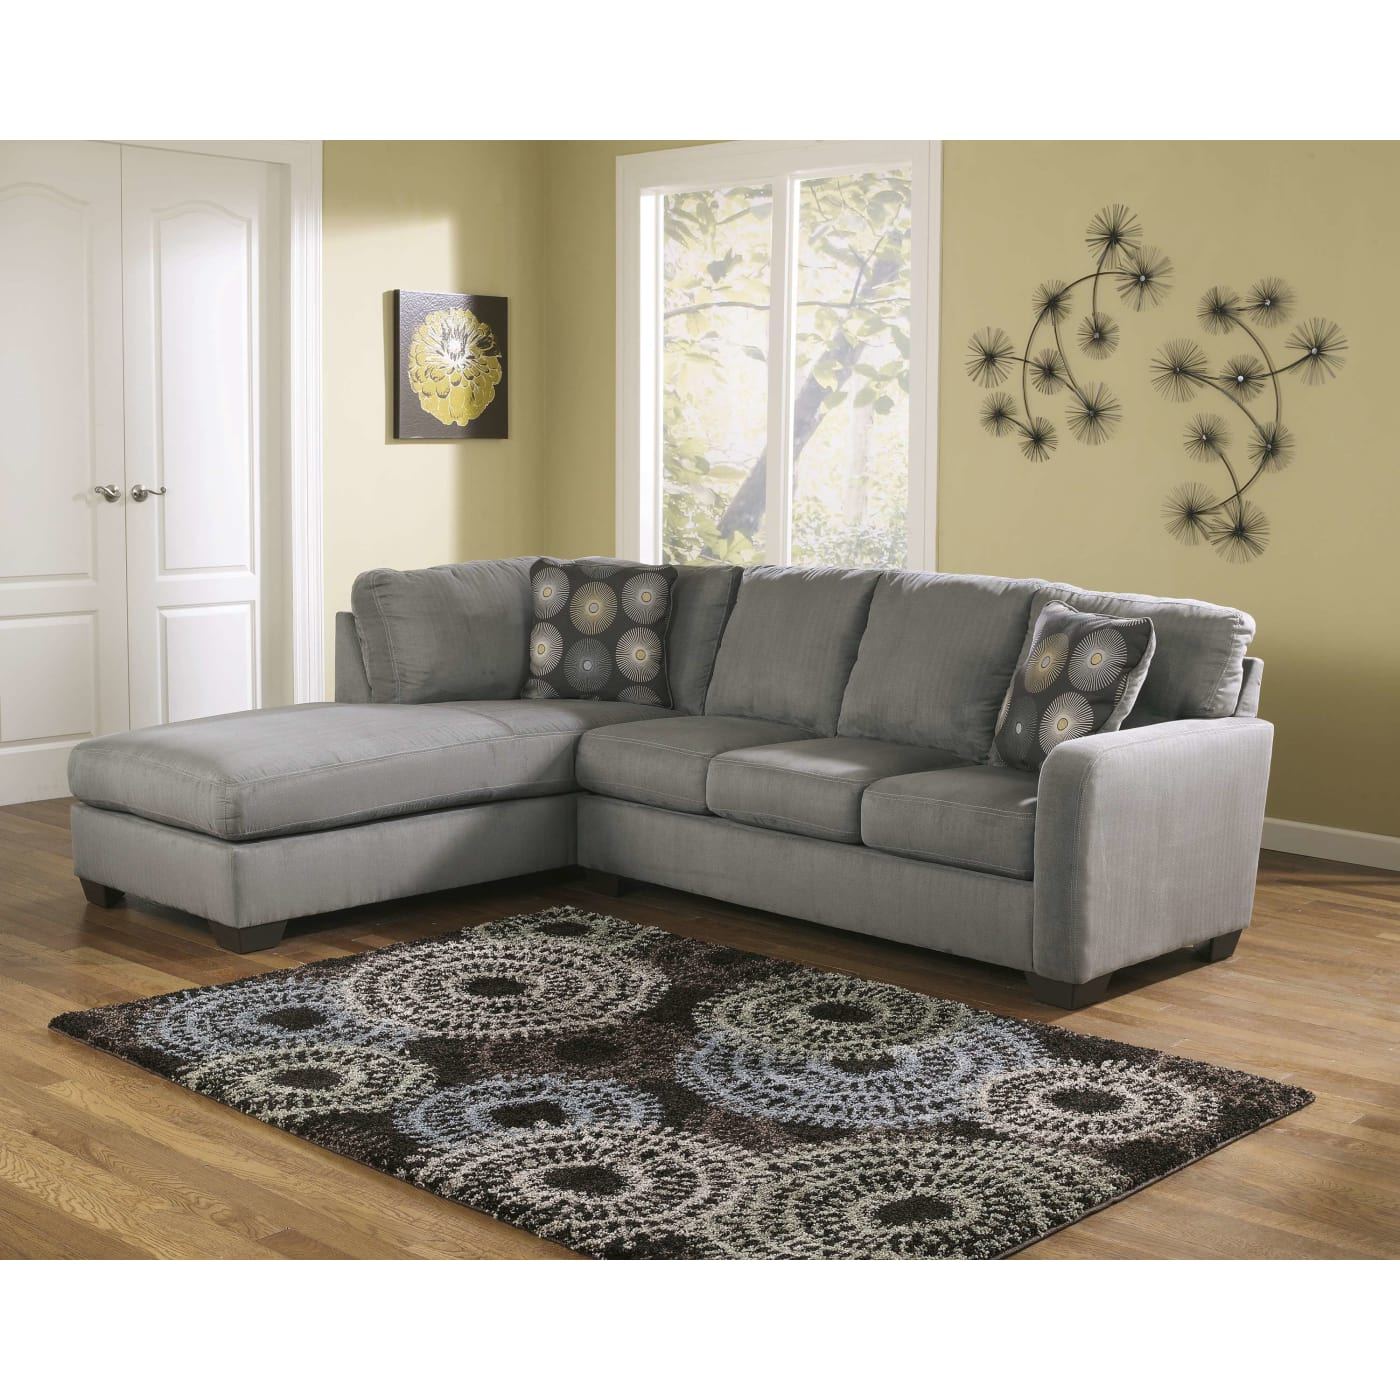 Discount Furniture Milwaukee: Signature Design By Ashley Zella Charcoal Left Chaise